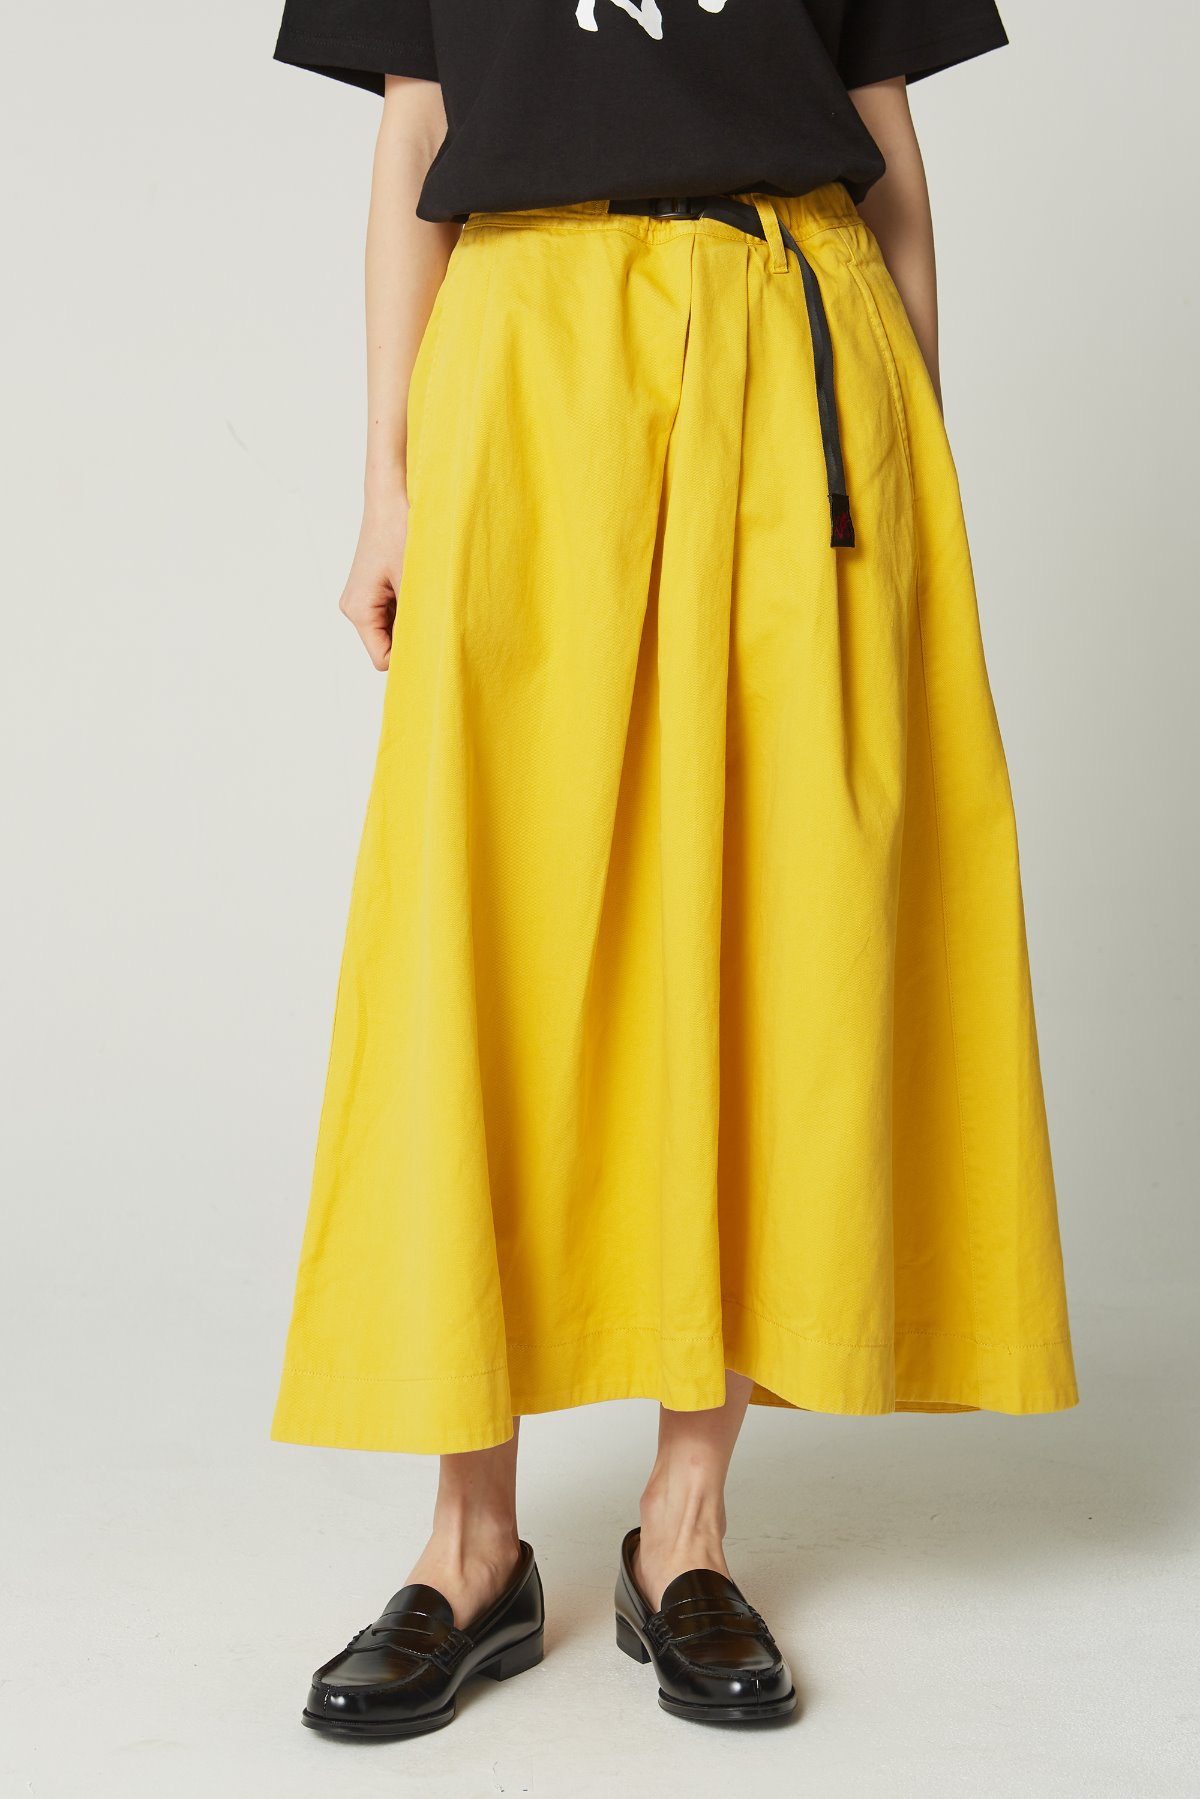 TALE CUT SKIRT YELLOW